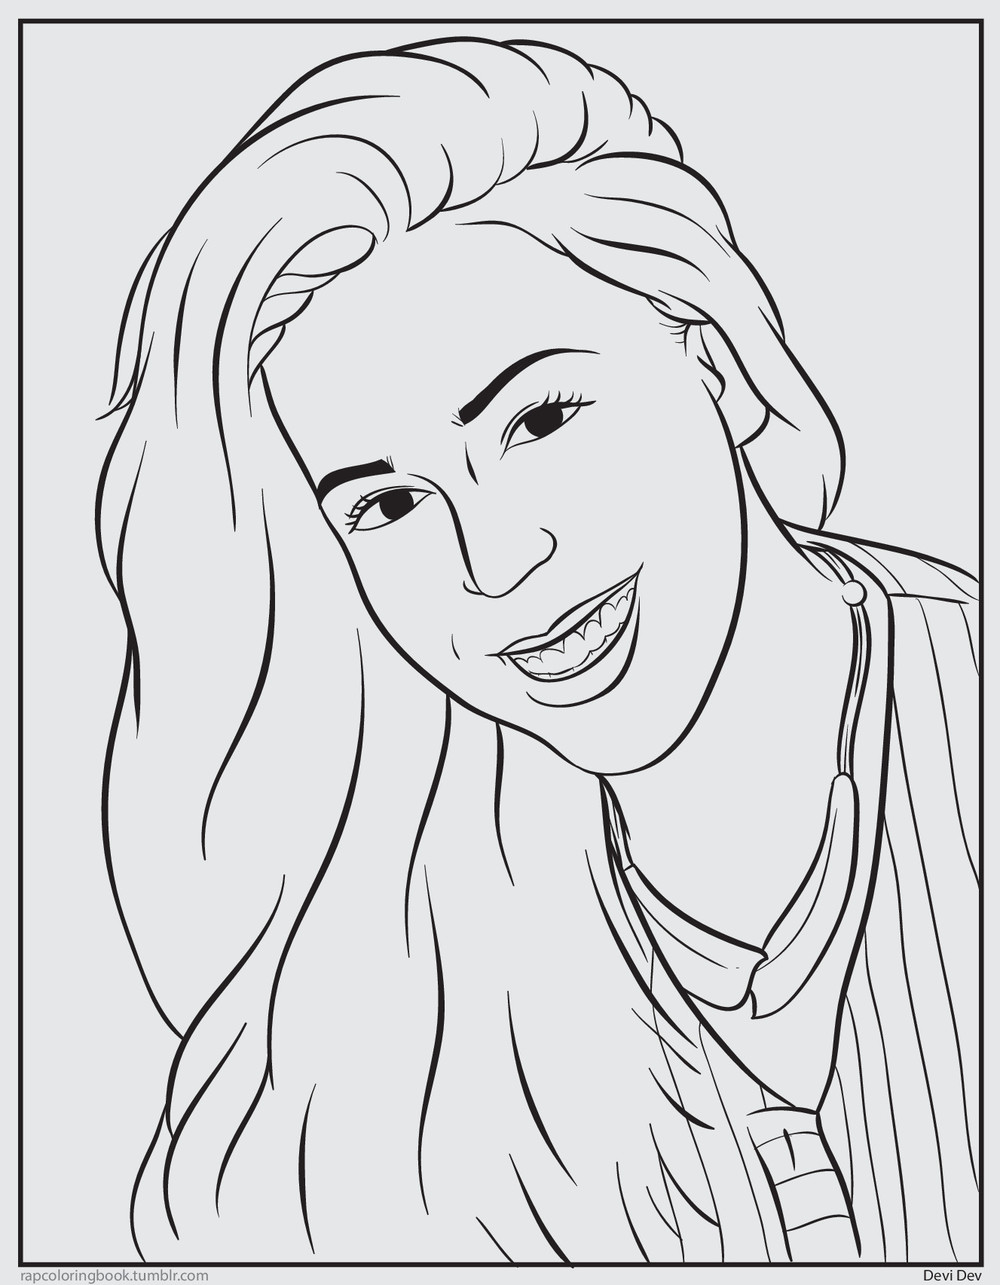 devis rap coloring book page devi brown - Rap Coloring Book